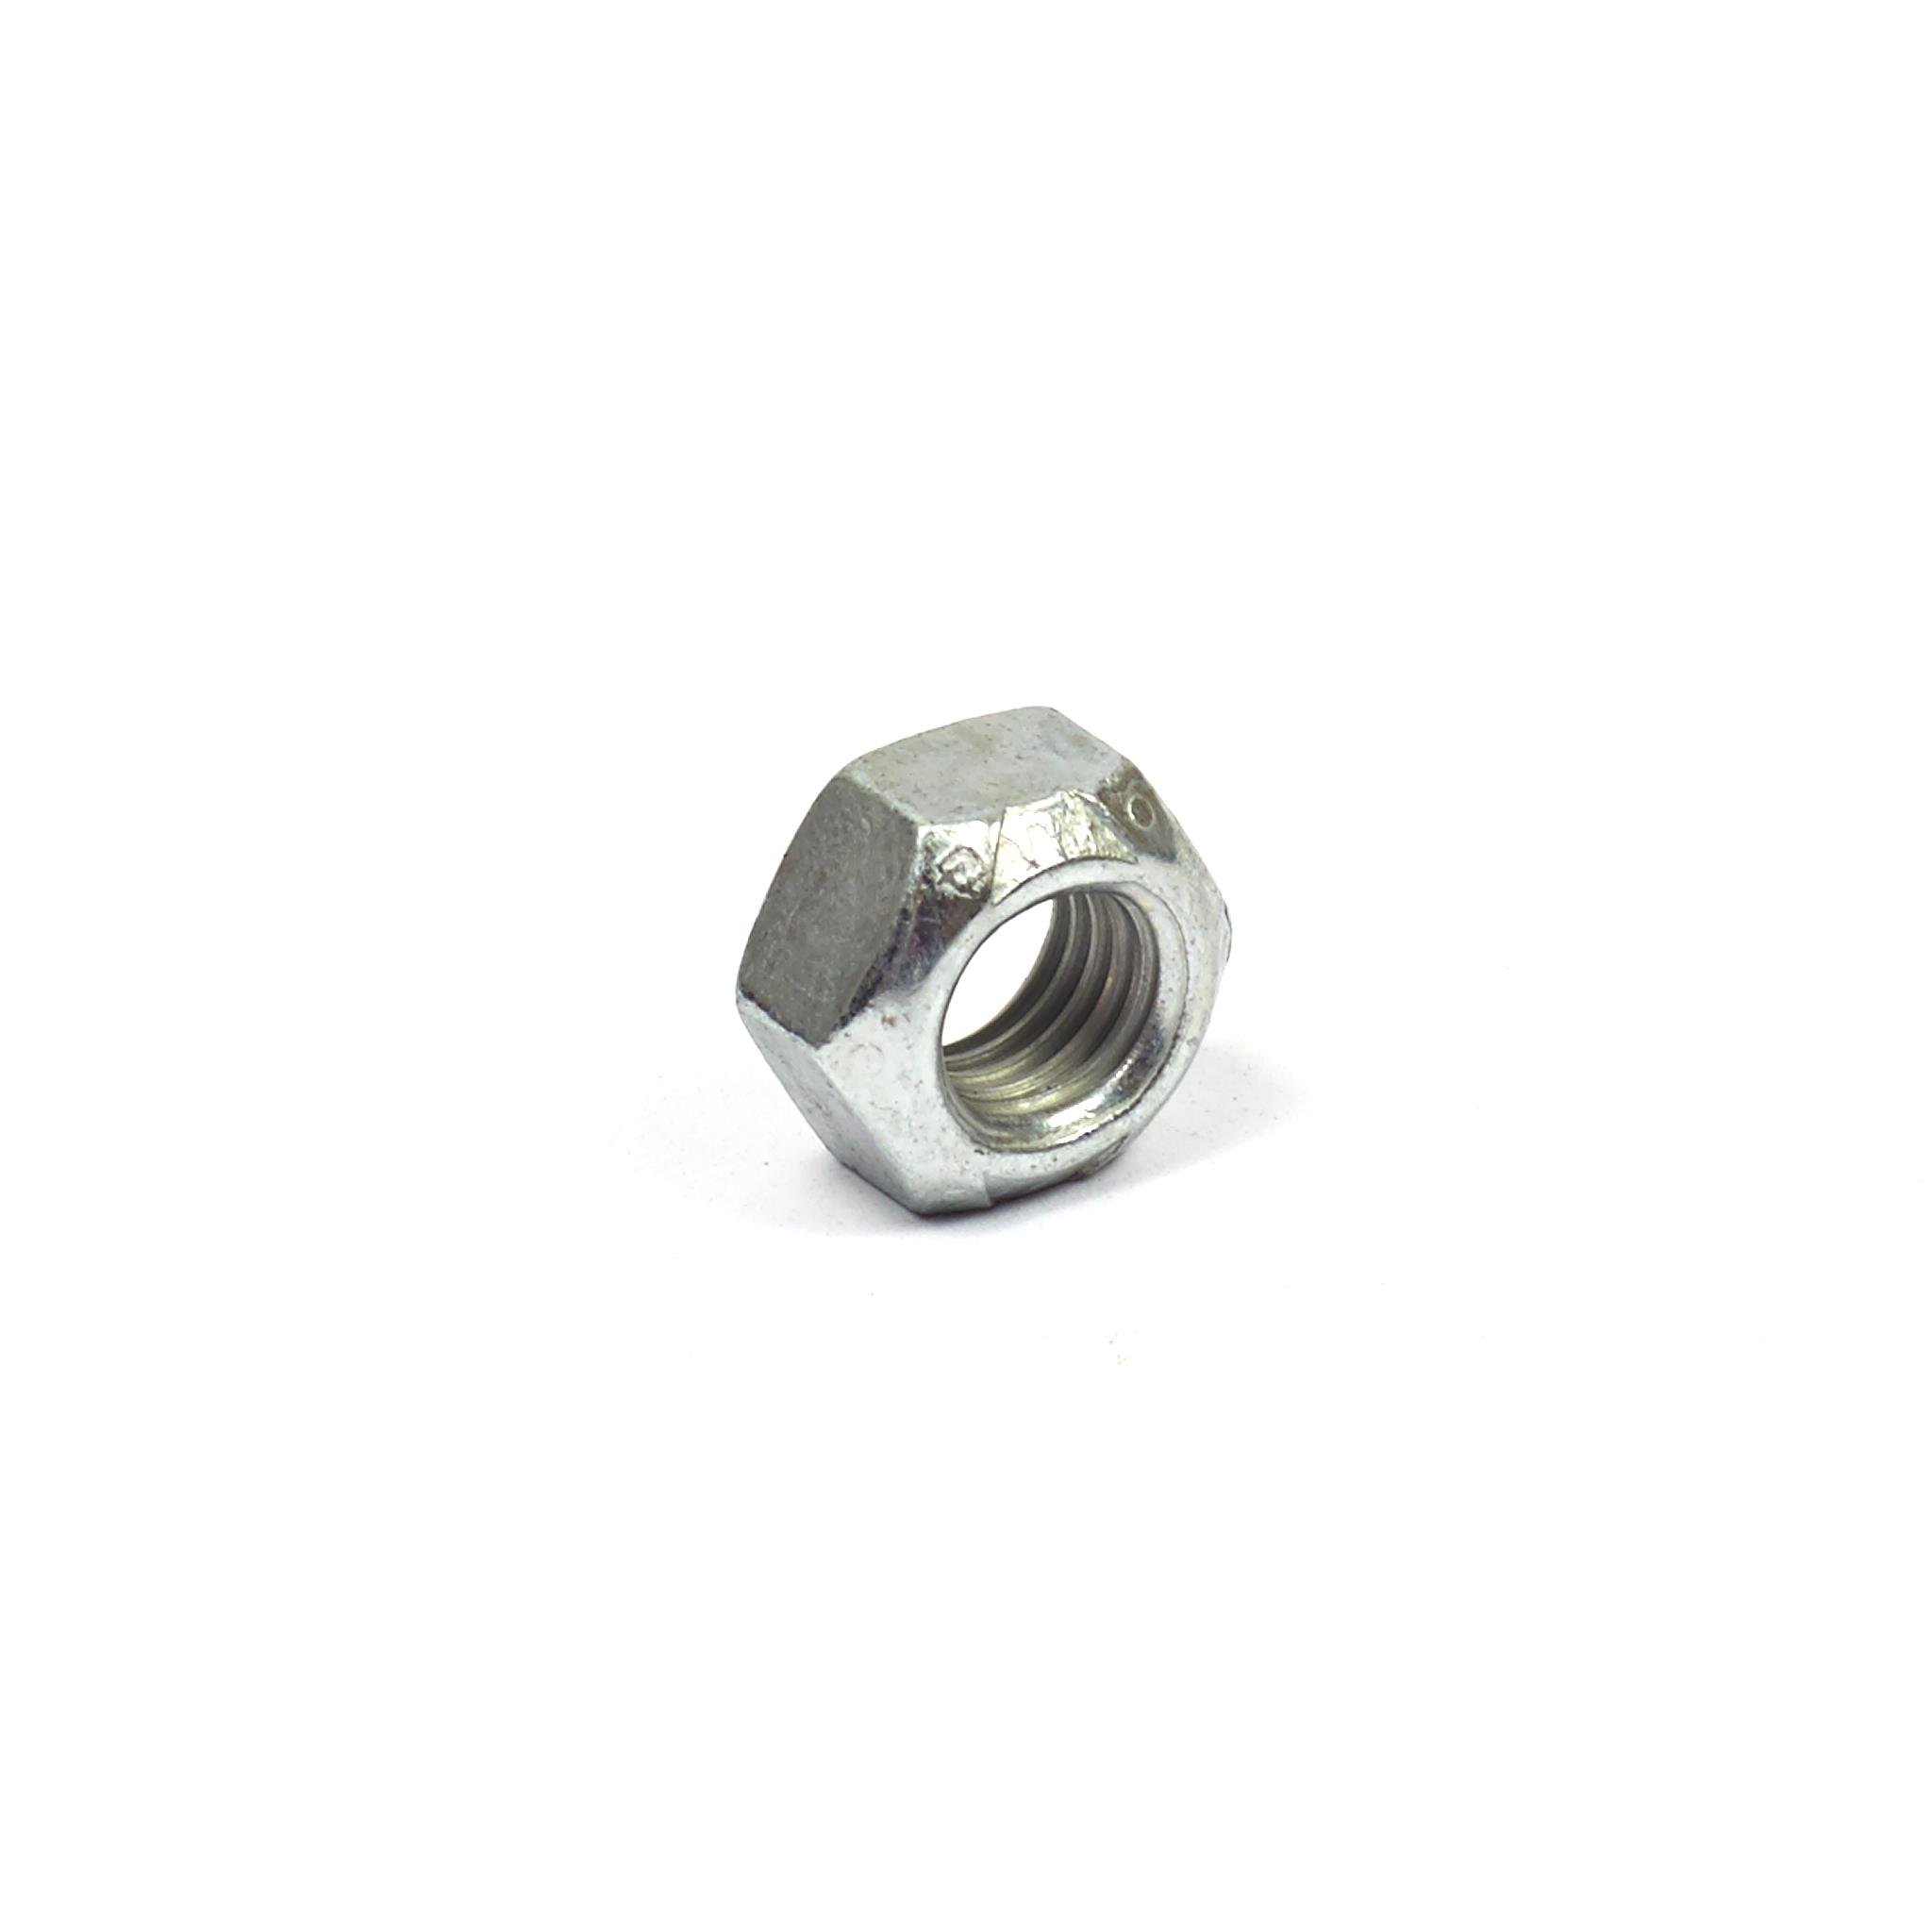 Briggs and Stratton 703459 Nut, Hex - 5/16-24